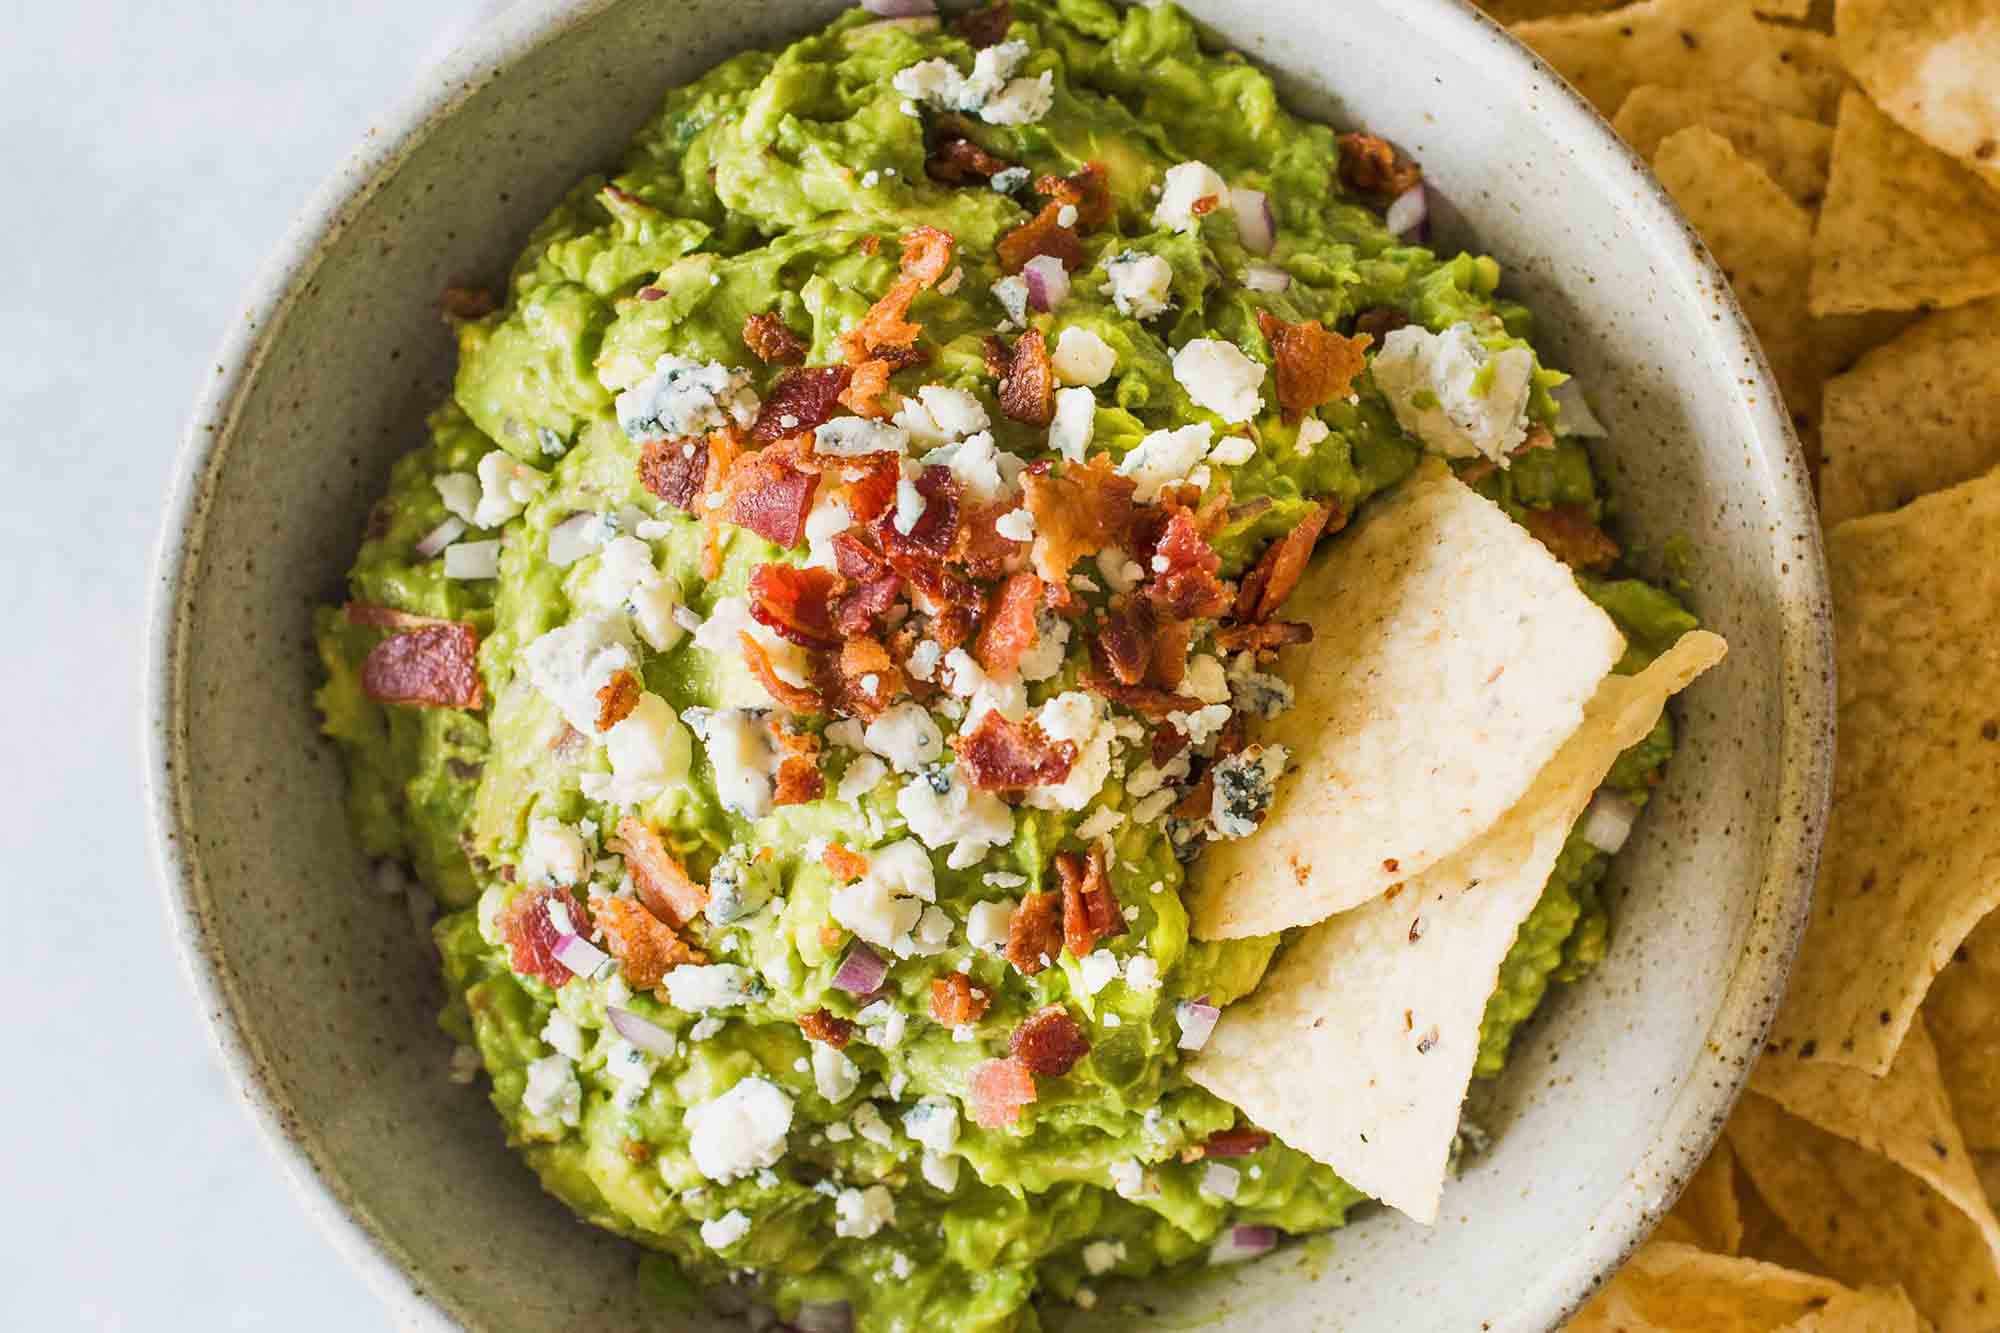 Best Guacamole Recipe with Bacon - guacamole with bacon and chips